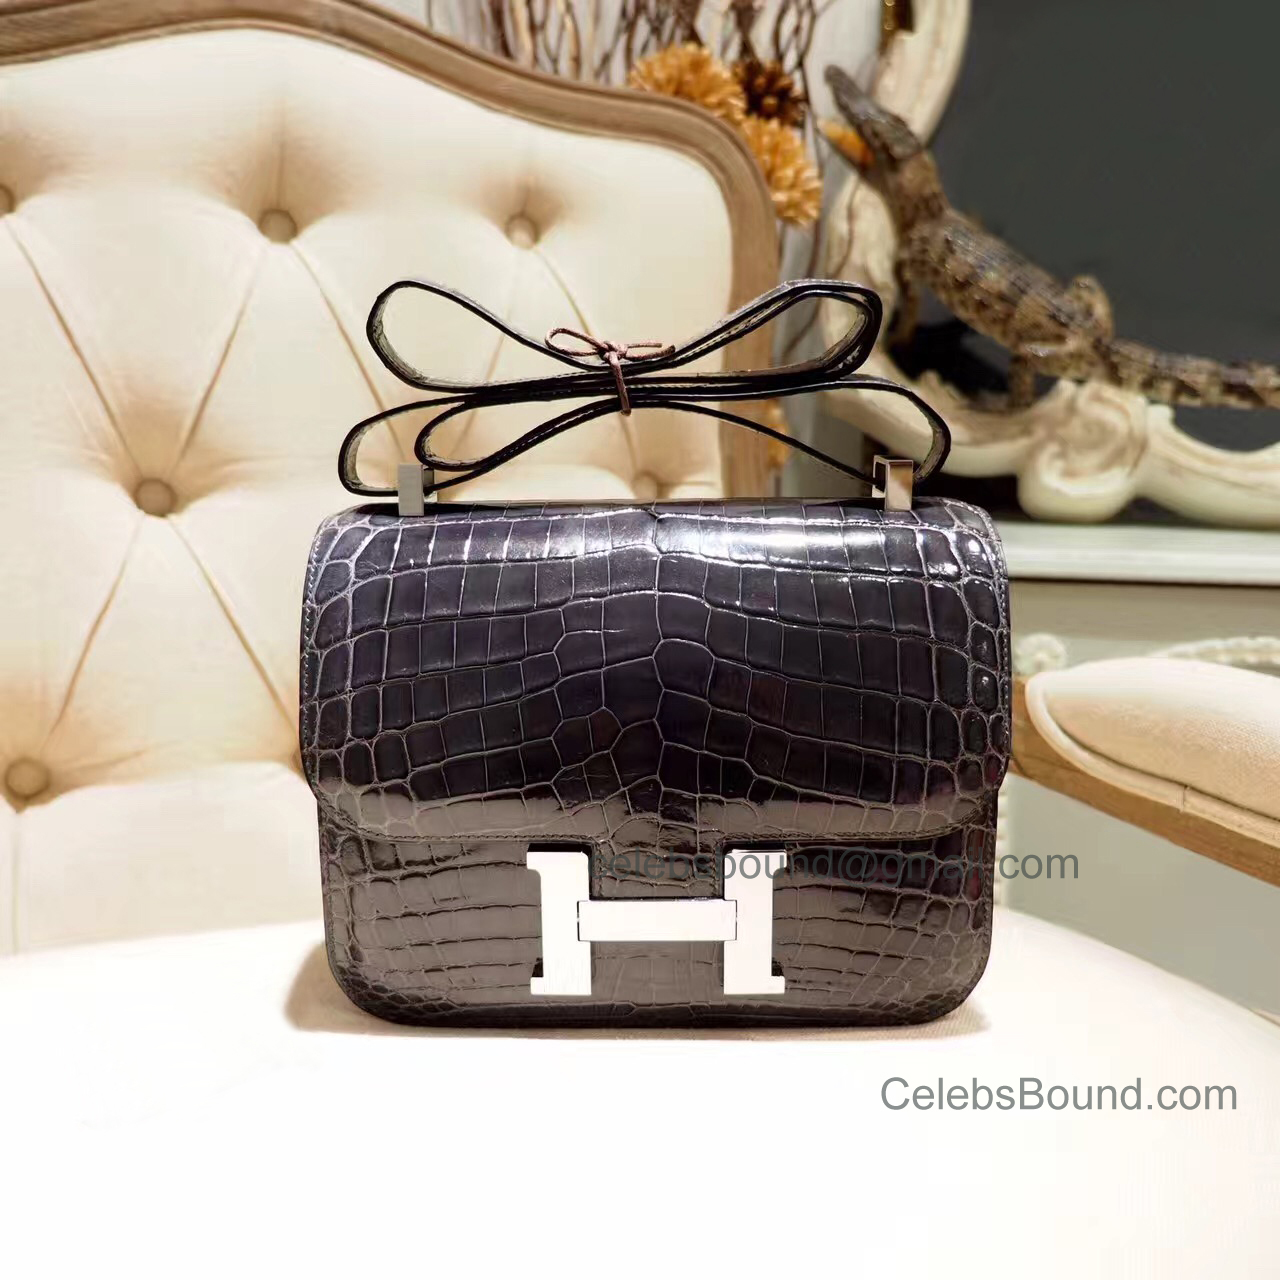 Replica Hermes Constance 23 Bag in ck88 Graphite Shiny Nile Croc PHW